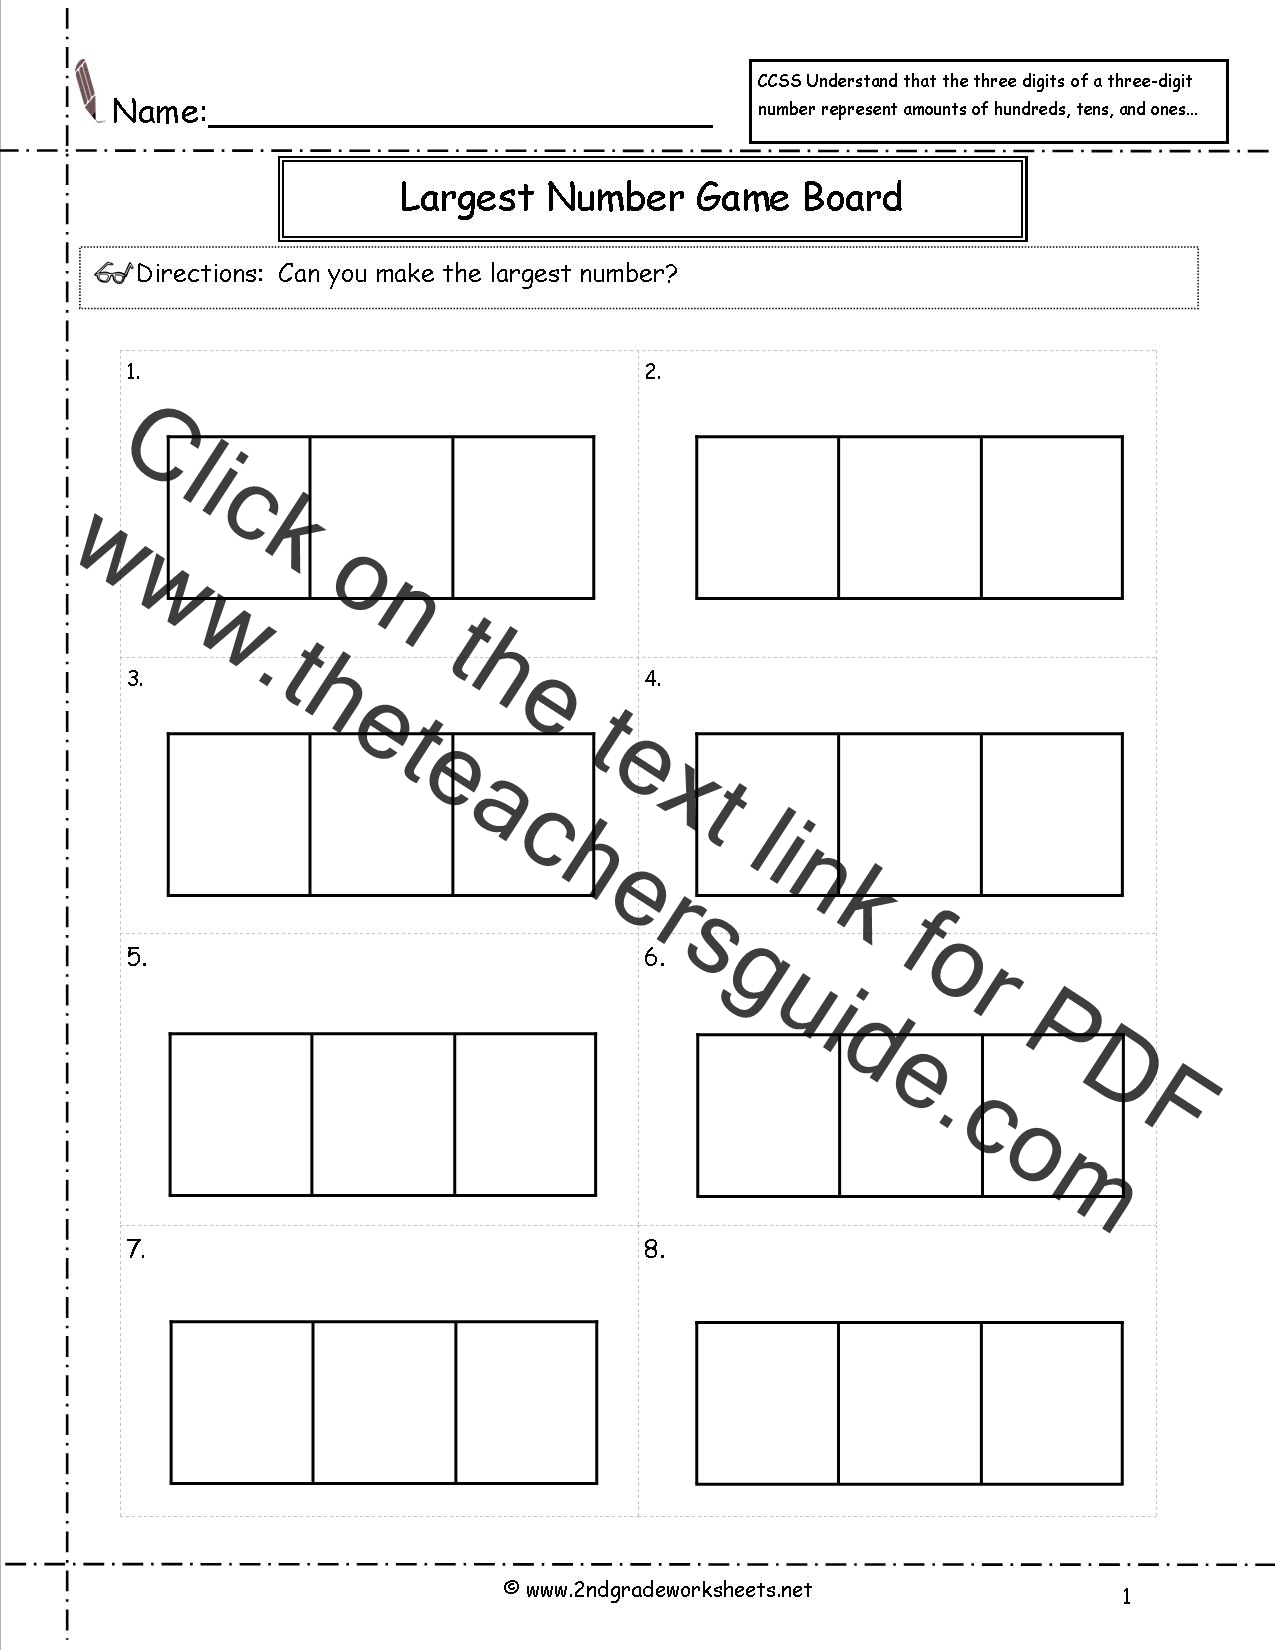 picture about Printable Place Value Game named CCSS 2.NBT.1 Worksheets Space Expense Worksheets.